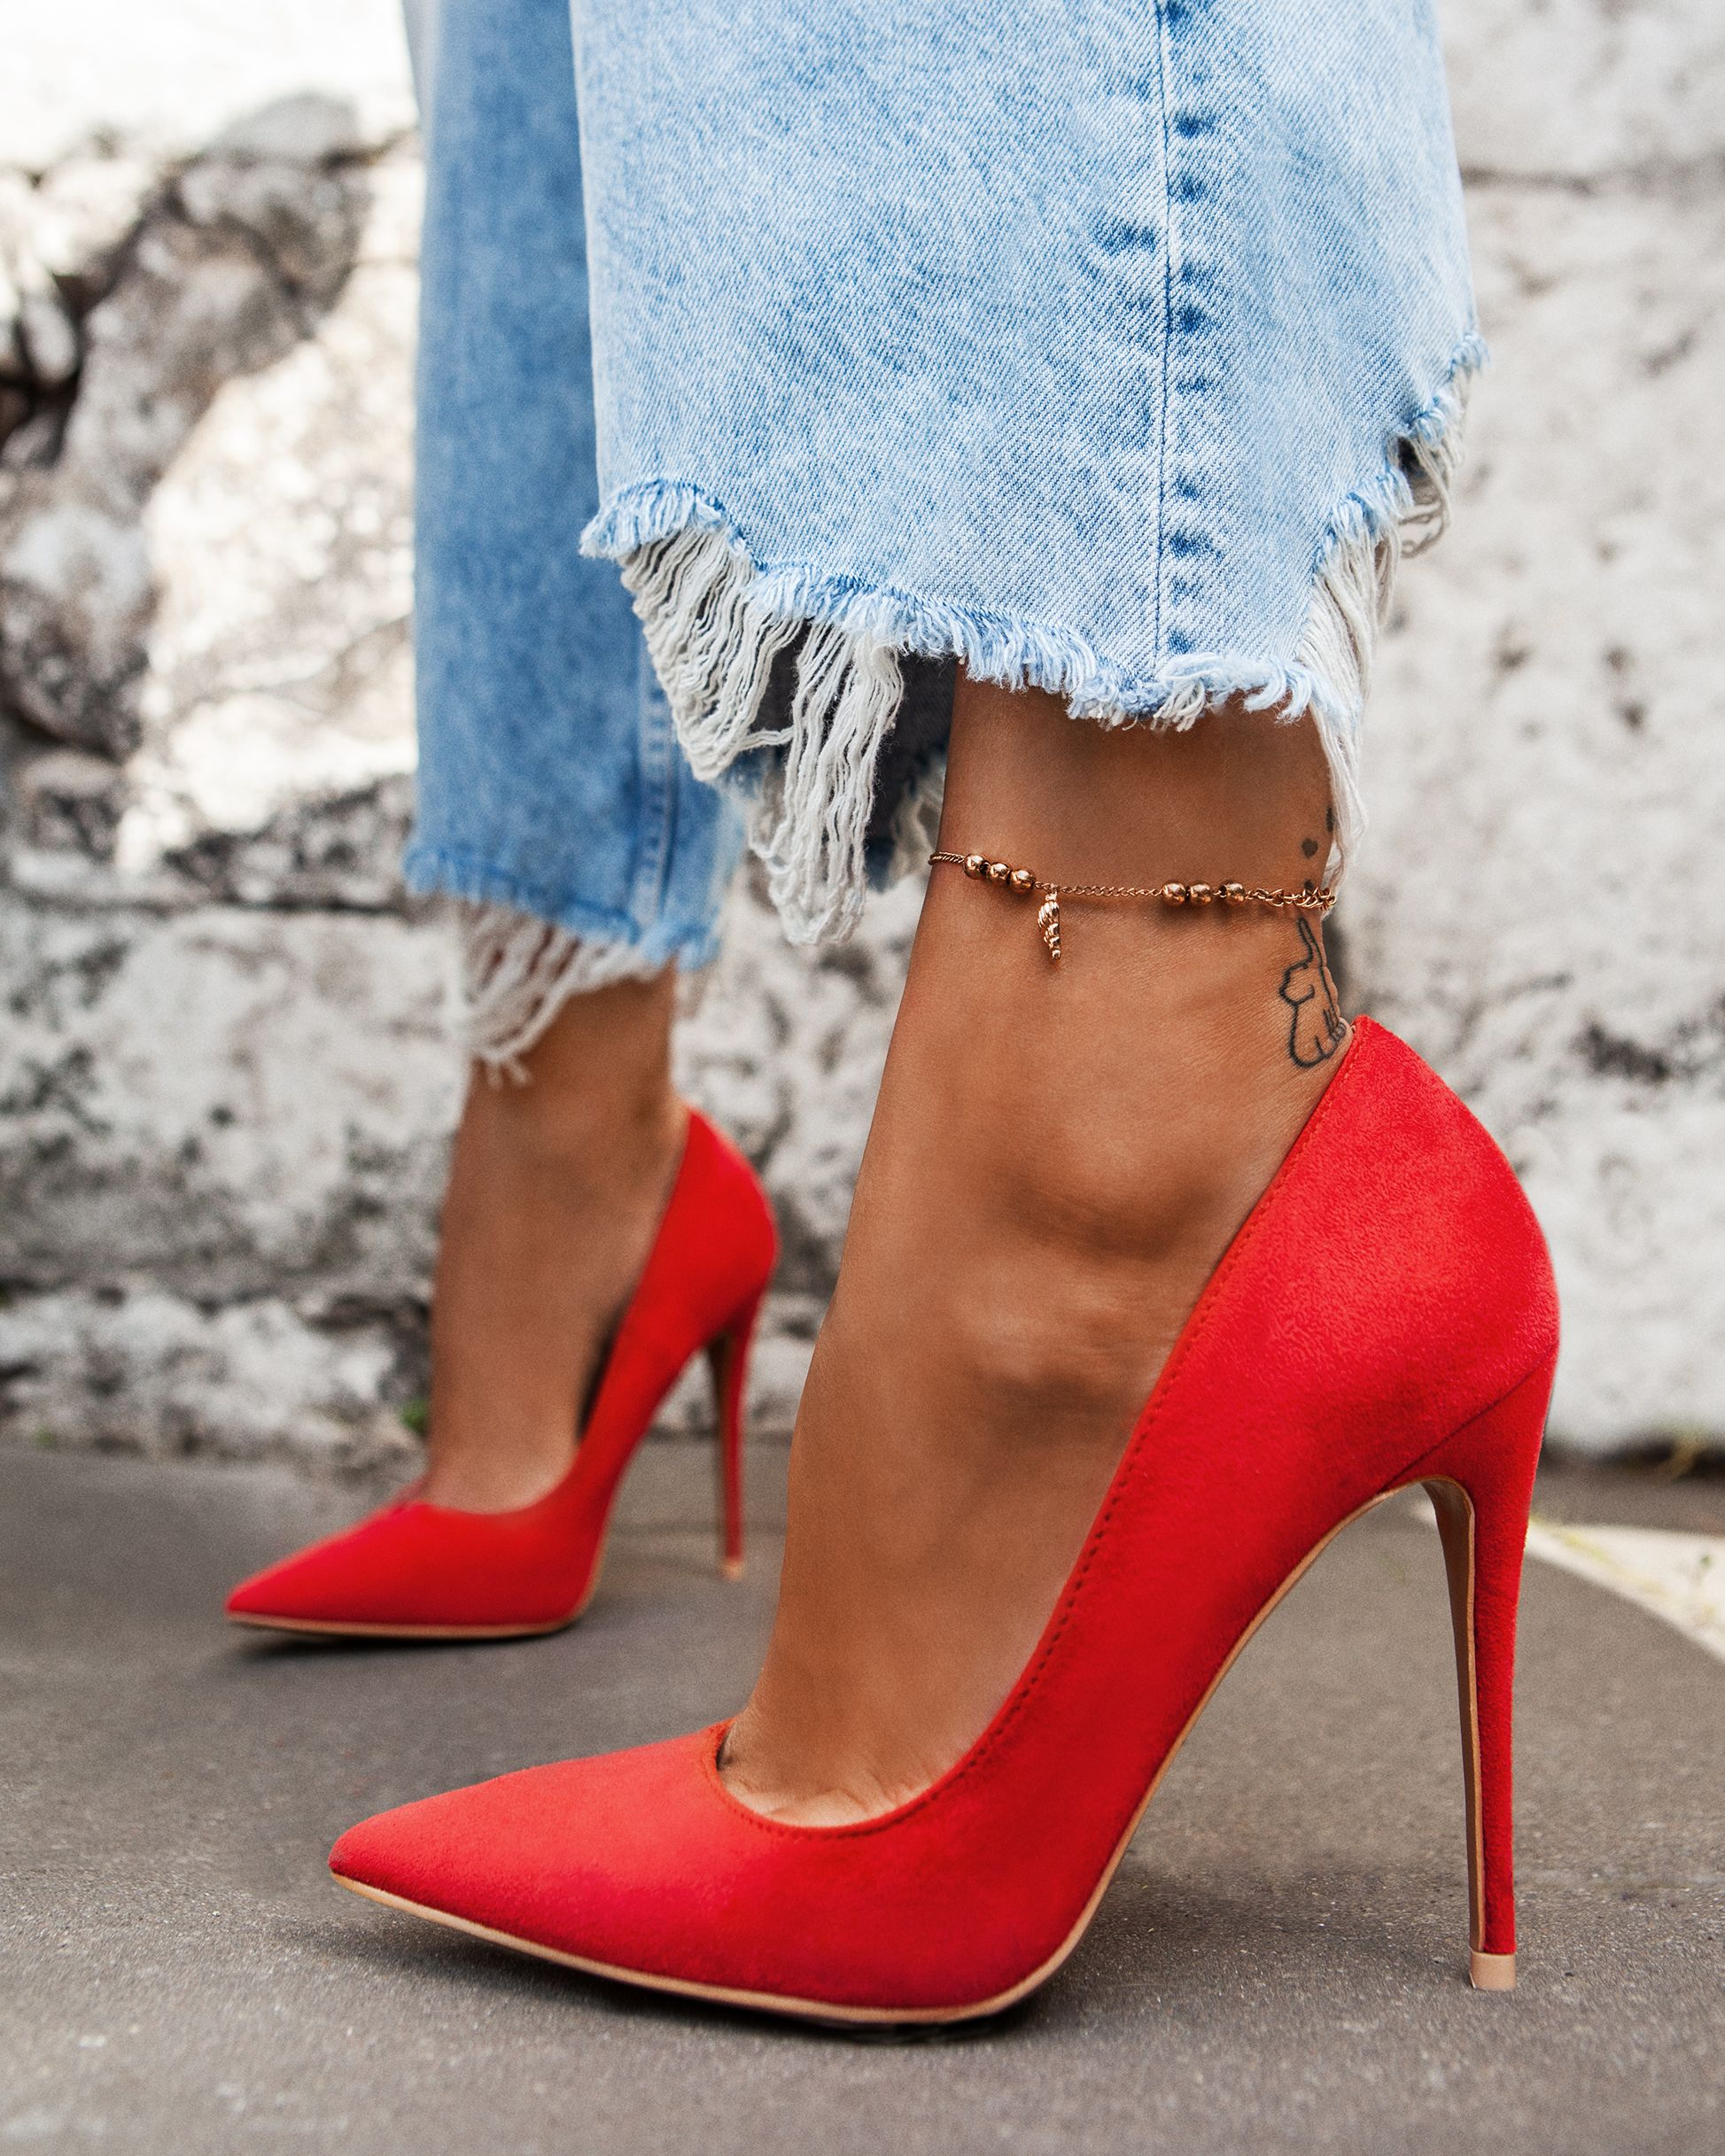 This gorgeous red high heels will give you truly red carpet feelings ! deezeeshoes deezee shoes @deezeeshoes #deezeeshoes #deezeepl #redshoes #highheels #redhighheels